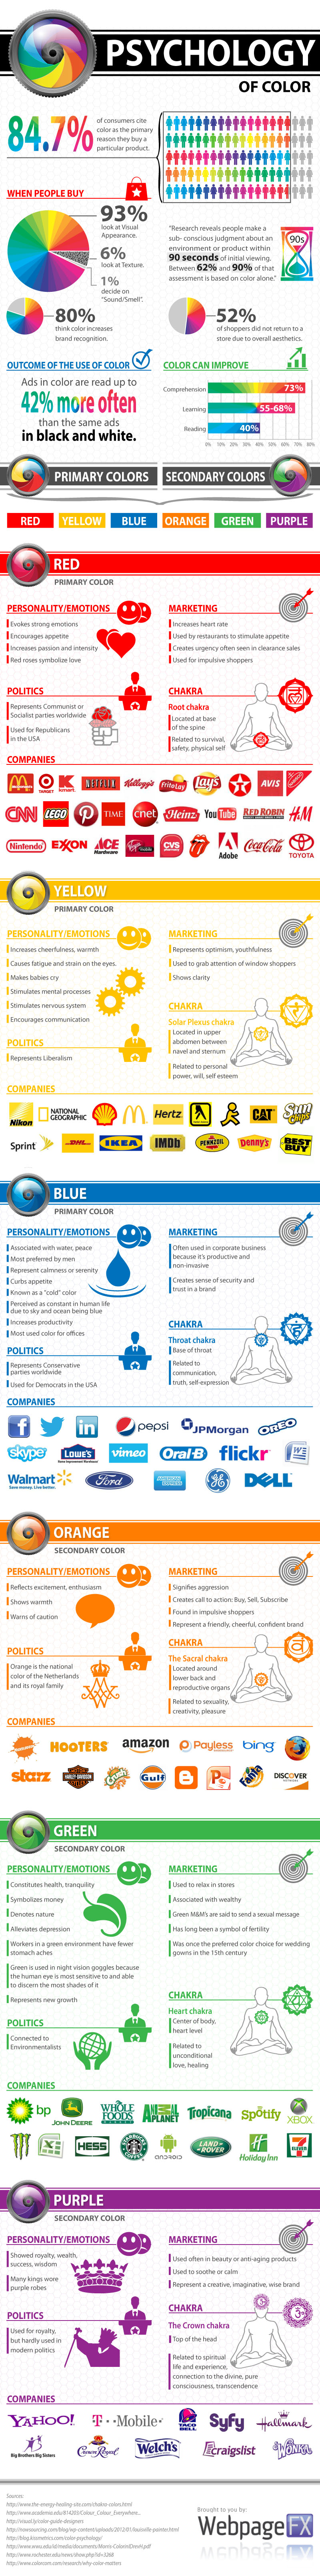 The Conscious and Sub-Conscious Effects of Color - Infographic